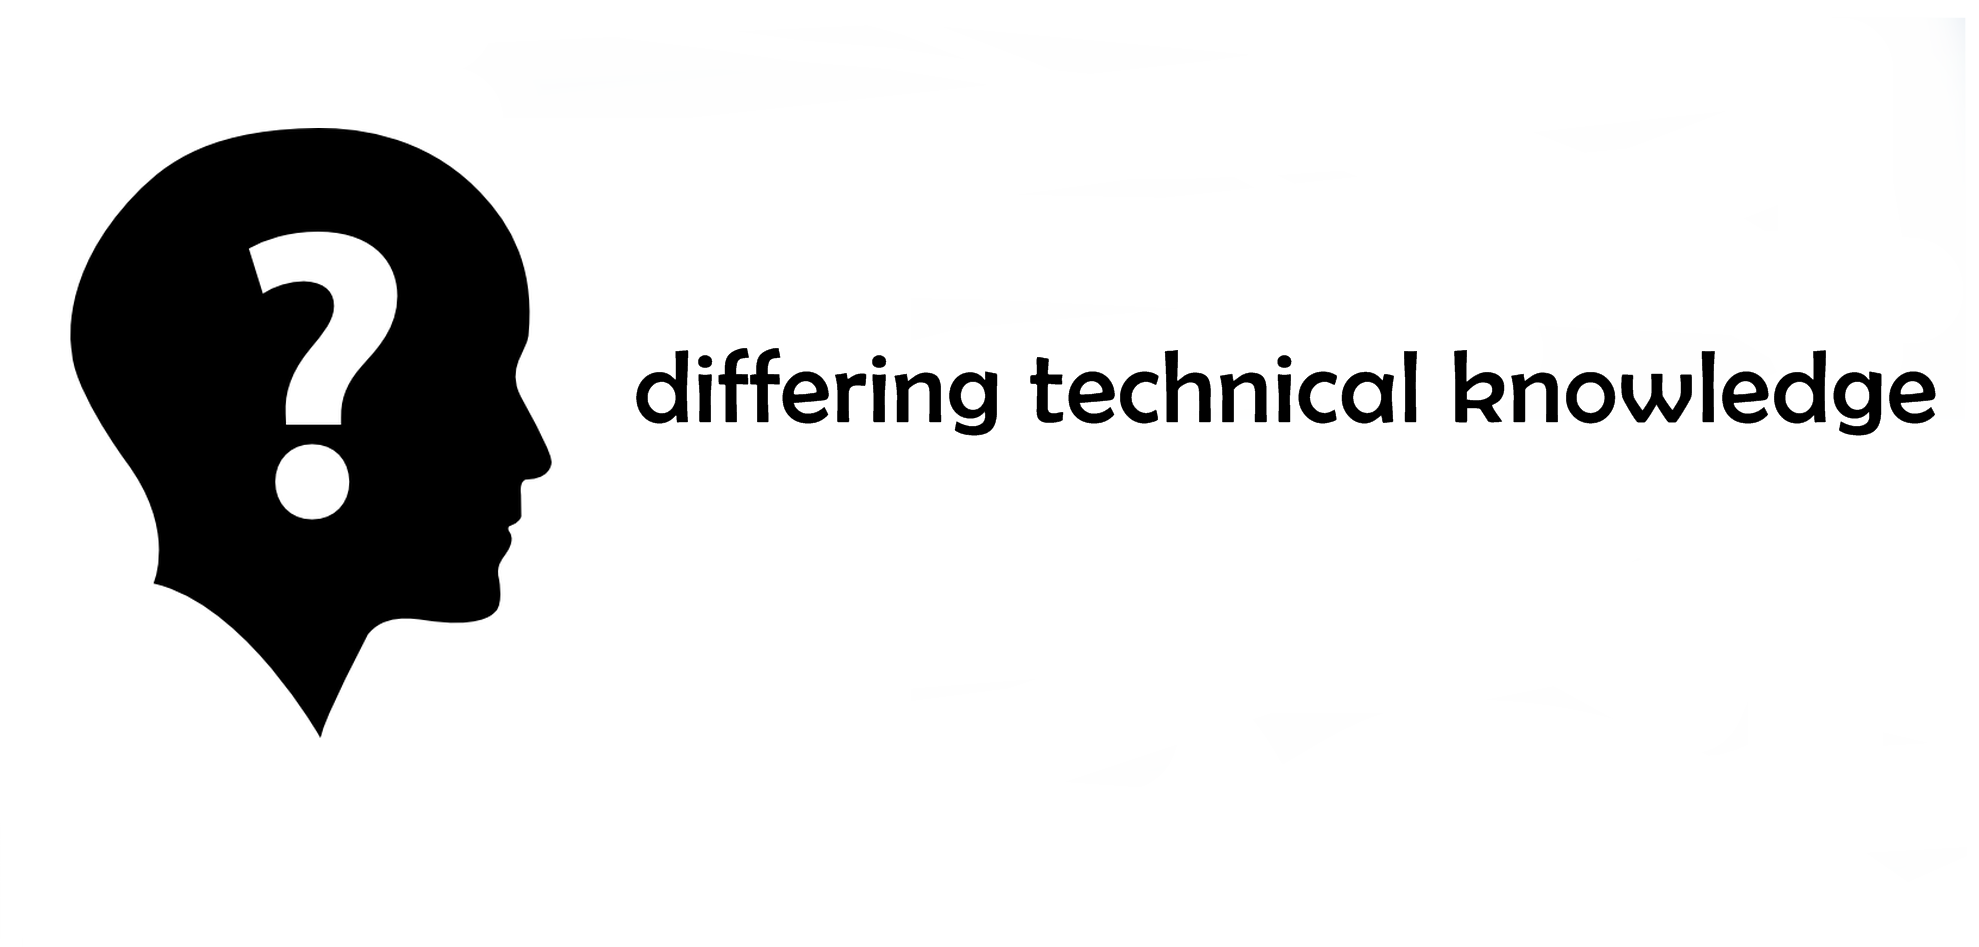 differing technical knowledge